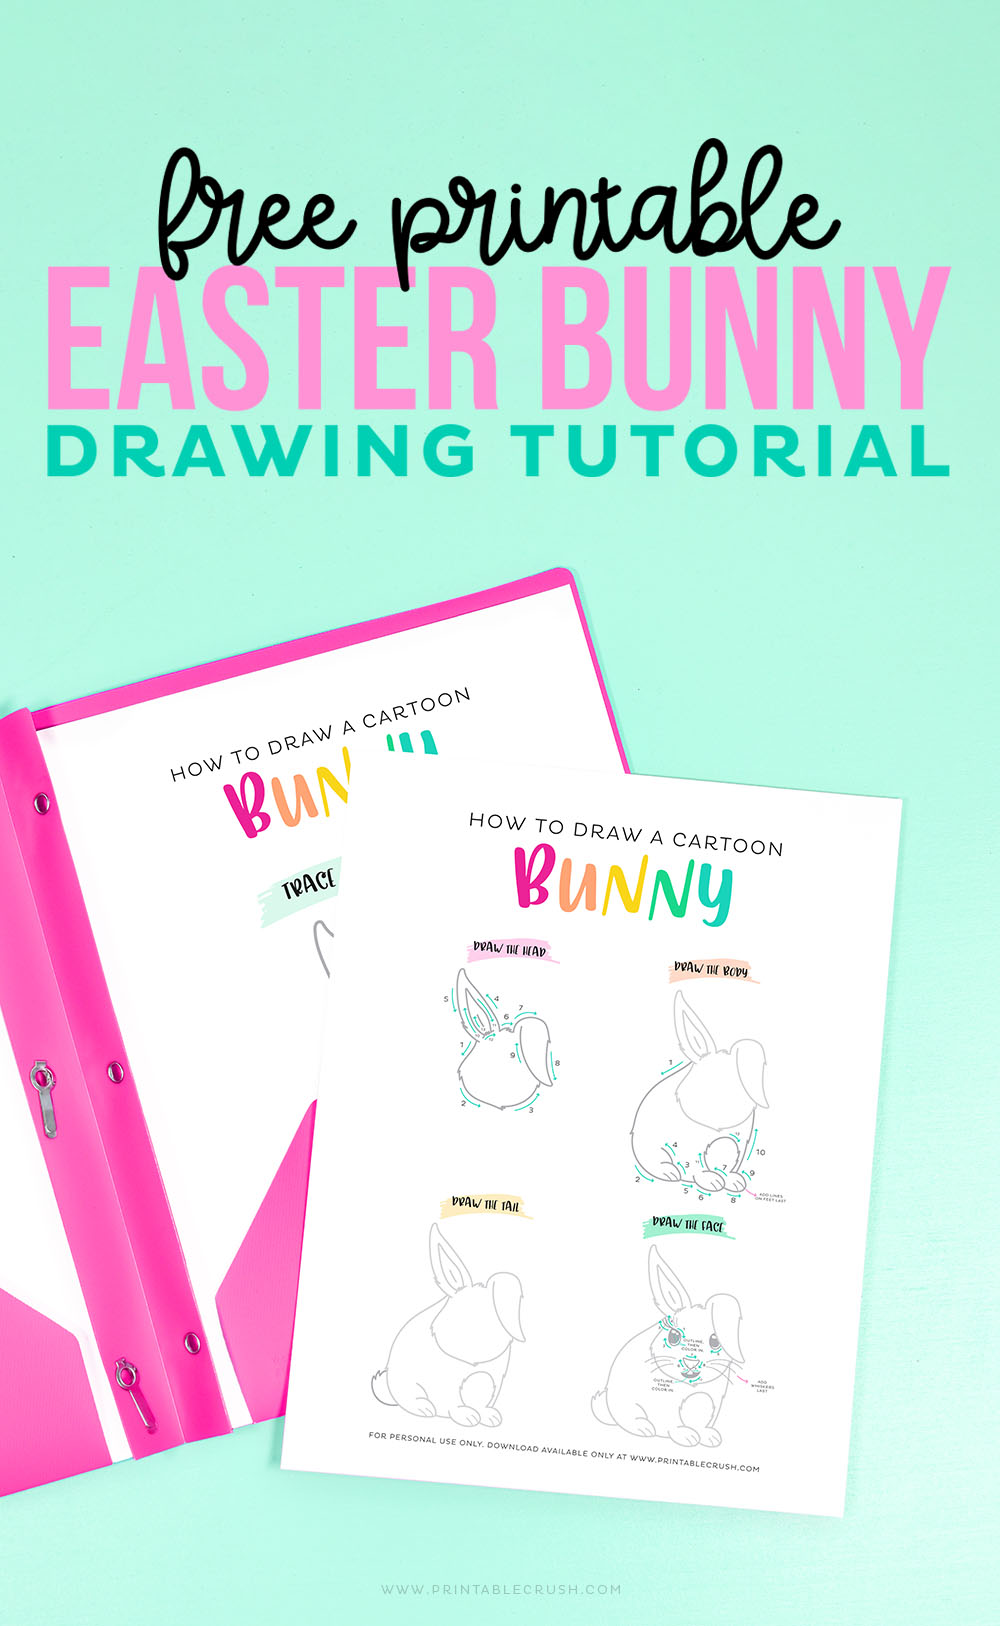 Free Printable Easter Bunny Drawing Tutorial - Free Easter Drawing Tutorial - Free Easter Bunny Drawing Tutorial - Printable Crush